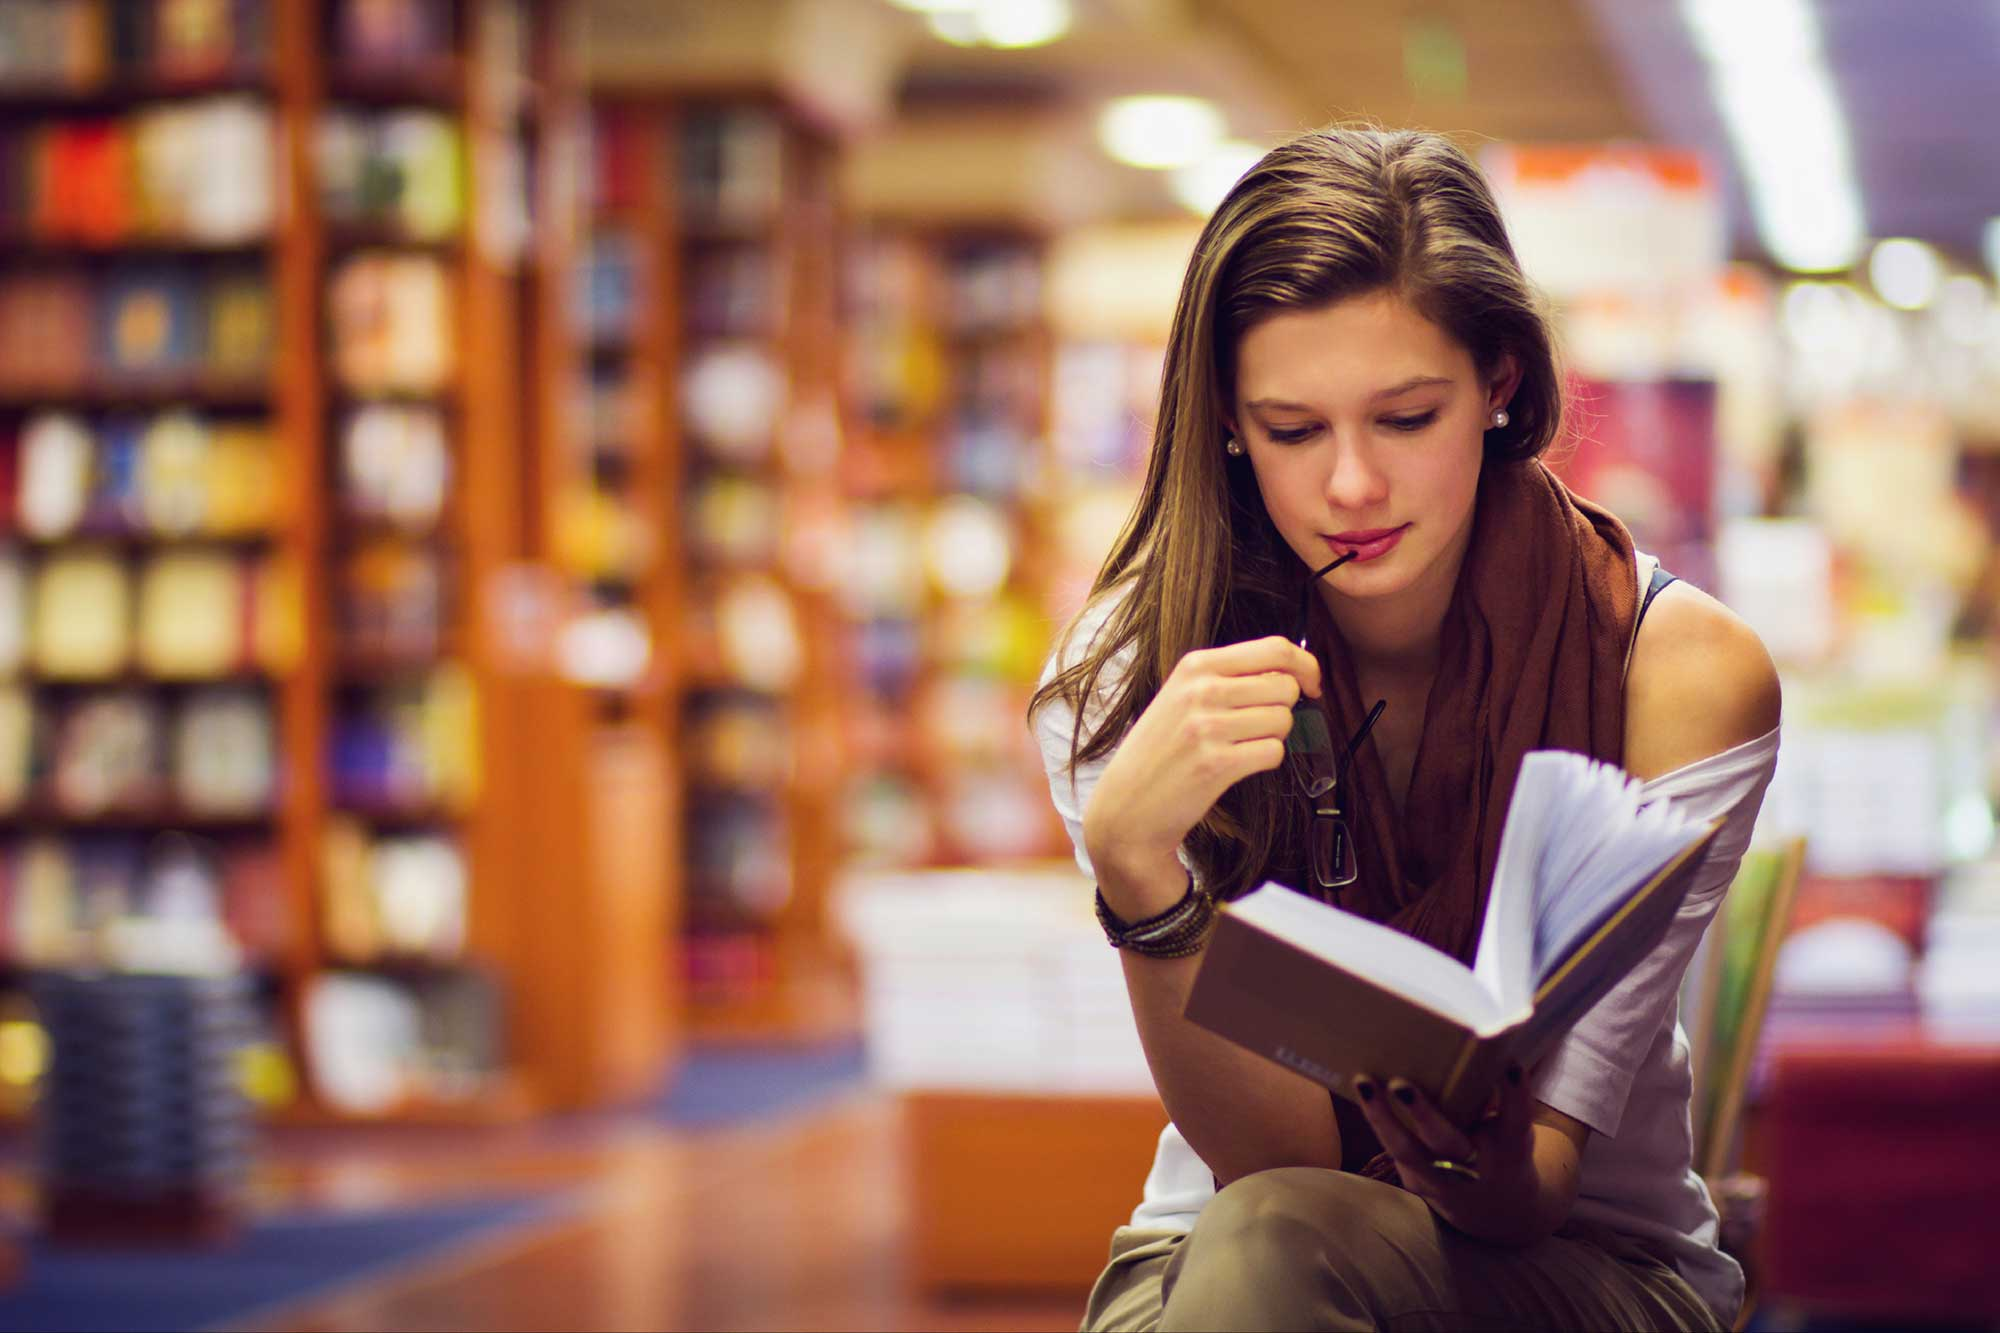 girl-in-library